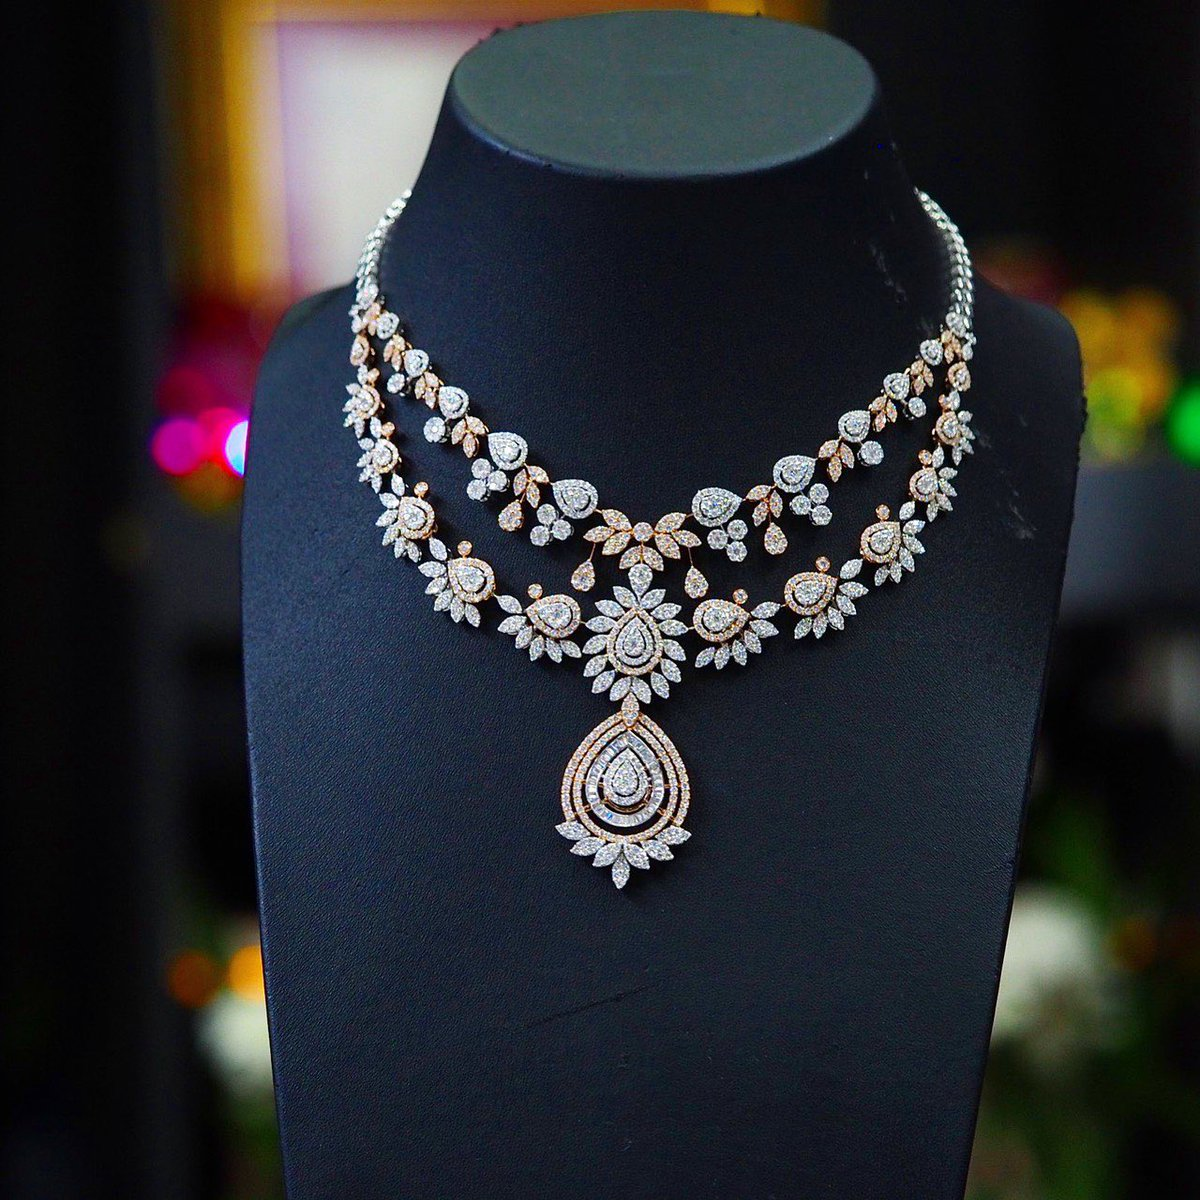 Diamond necklaces . #diamonds #diamondnecklaces#weddingnecklaces #illusion #luxuryjewelry #highjewelry #finejewelry #Petchchompoojewelry #เพชรชมพูจิวเวลรี่ #fashionjewelry #weddingring  #weddingband #chanellover #hermeslover #lvlover #hermesthailand #chanelthailand #lvthailand